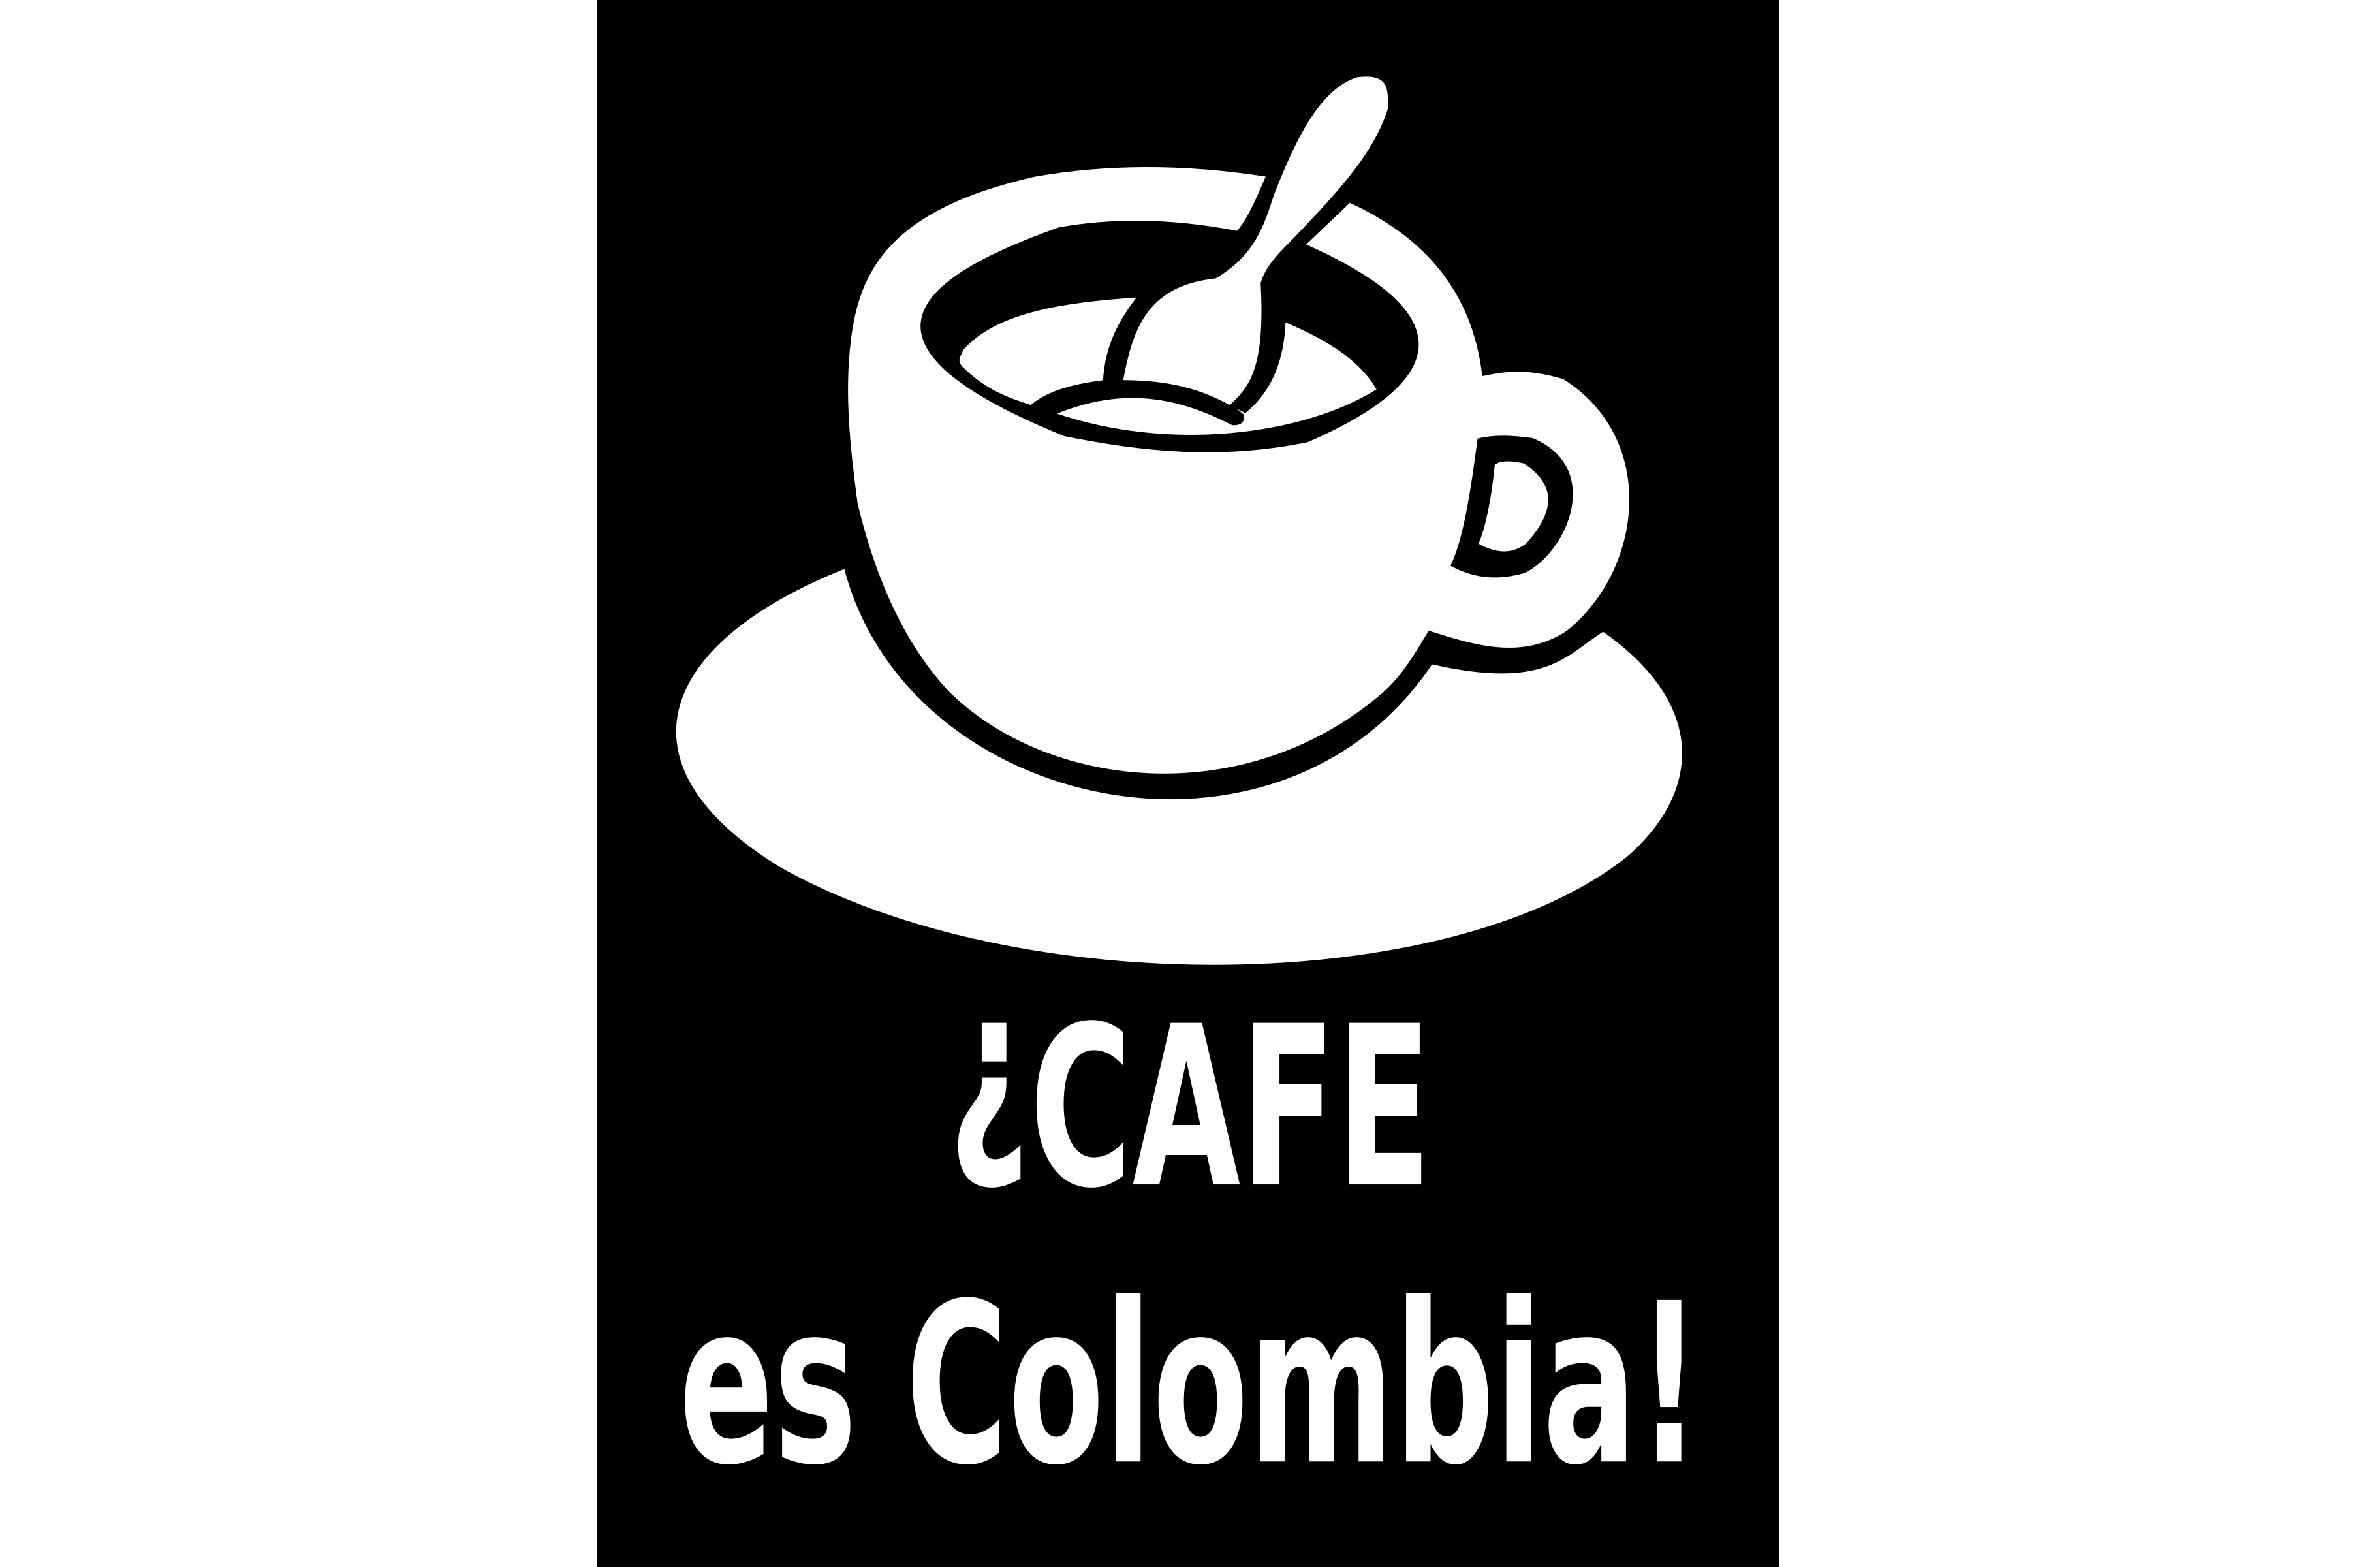 CAFE es Colombia by judavaqui